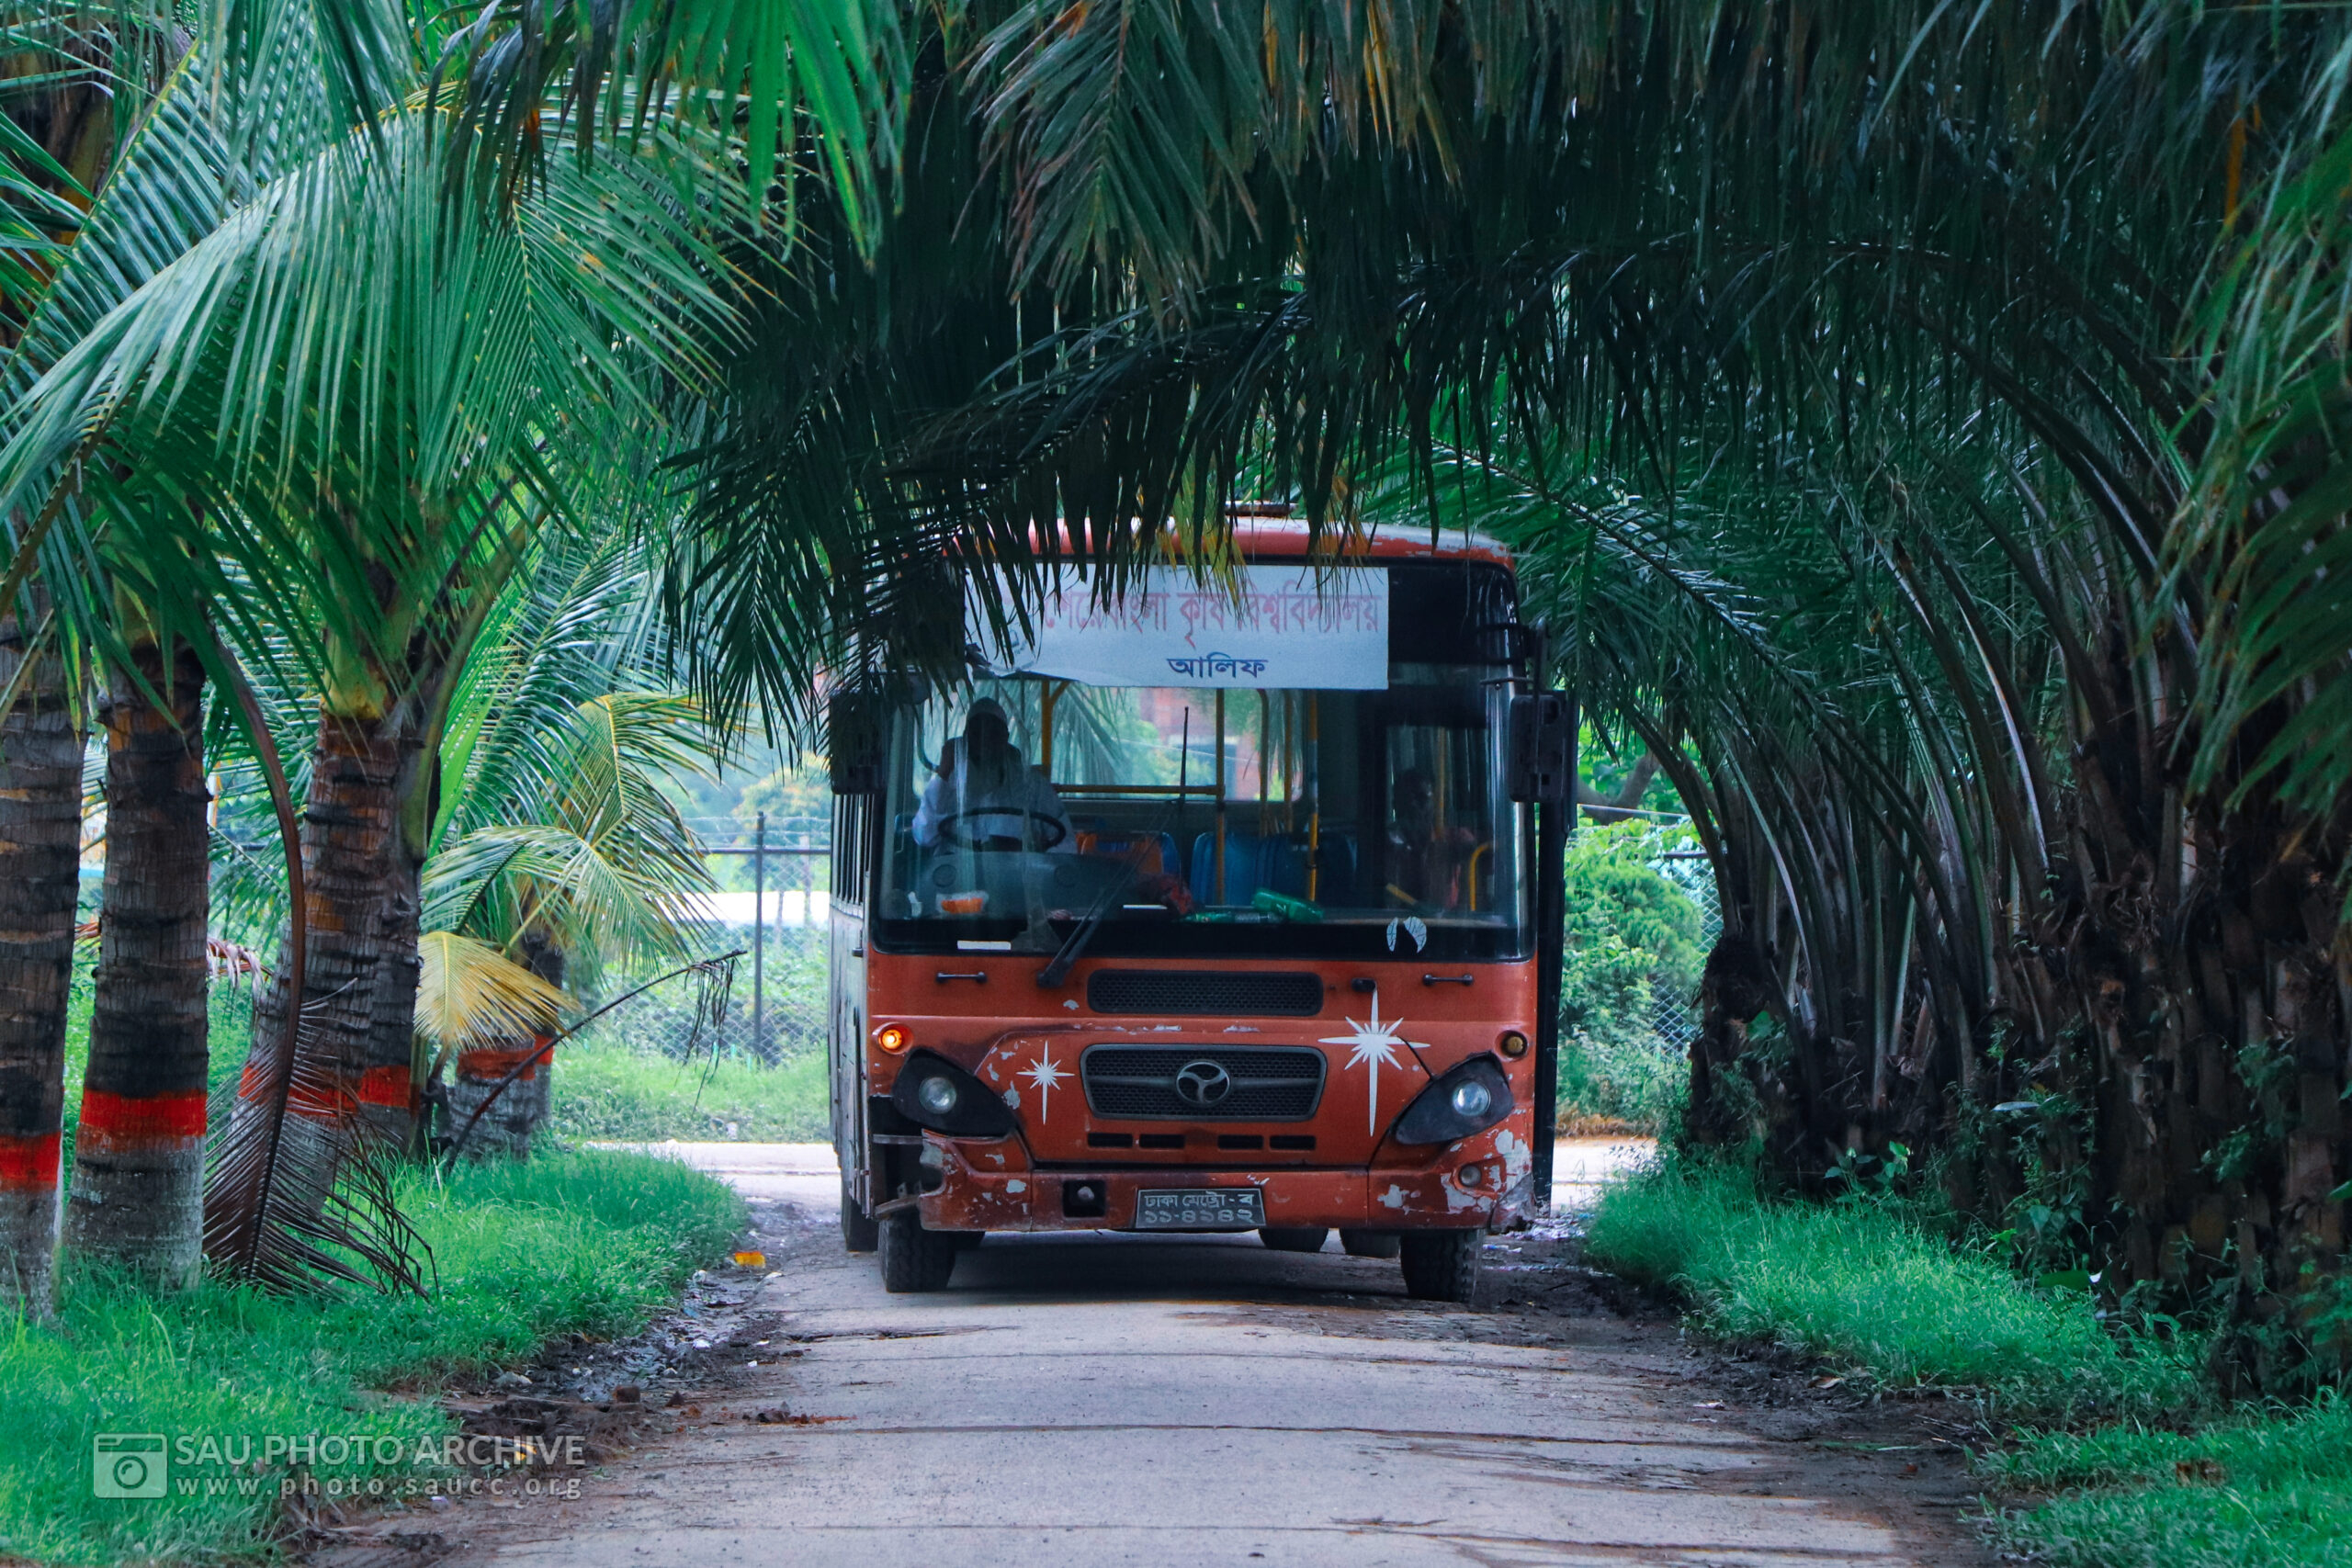 A Road photo is captured by Md. Nazmus Sakib Anik at Sher-e-Bangla Agricultural University titled Red Bus (Alif) on the way of Old Agribusiness Management Faculty